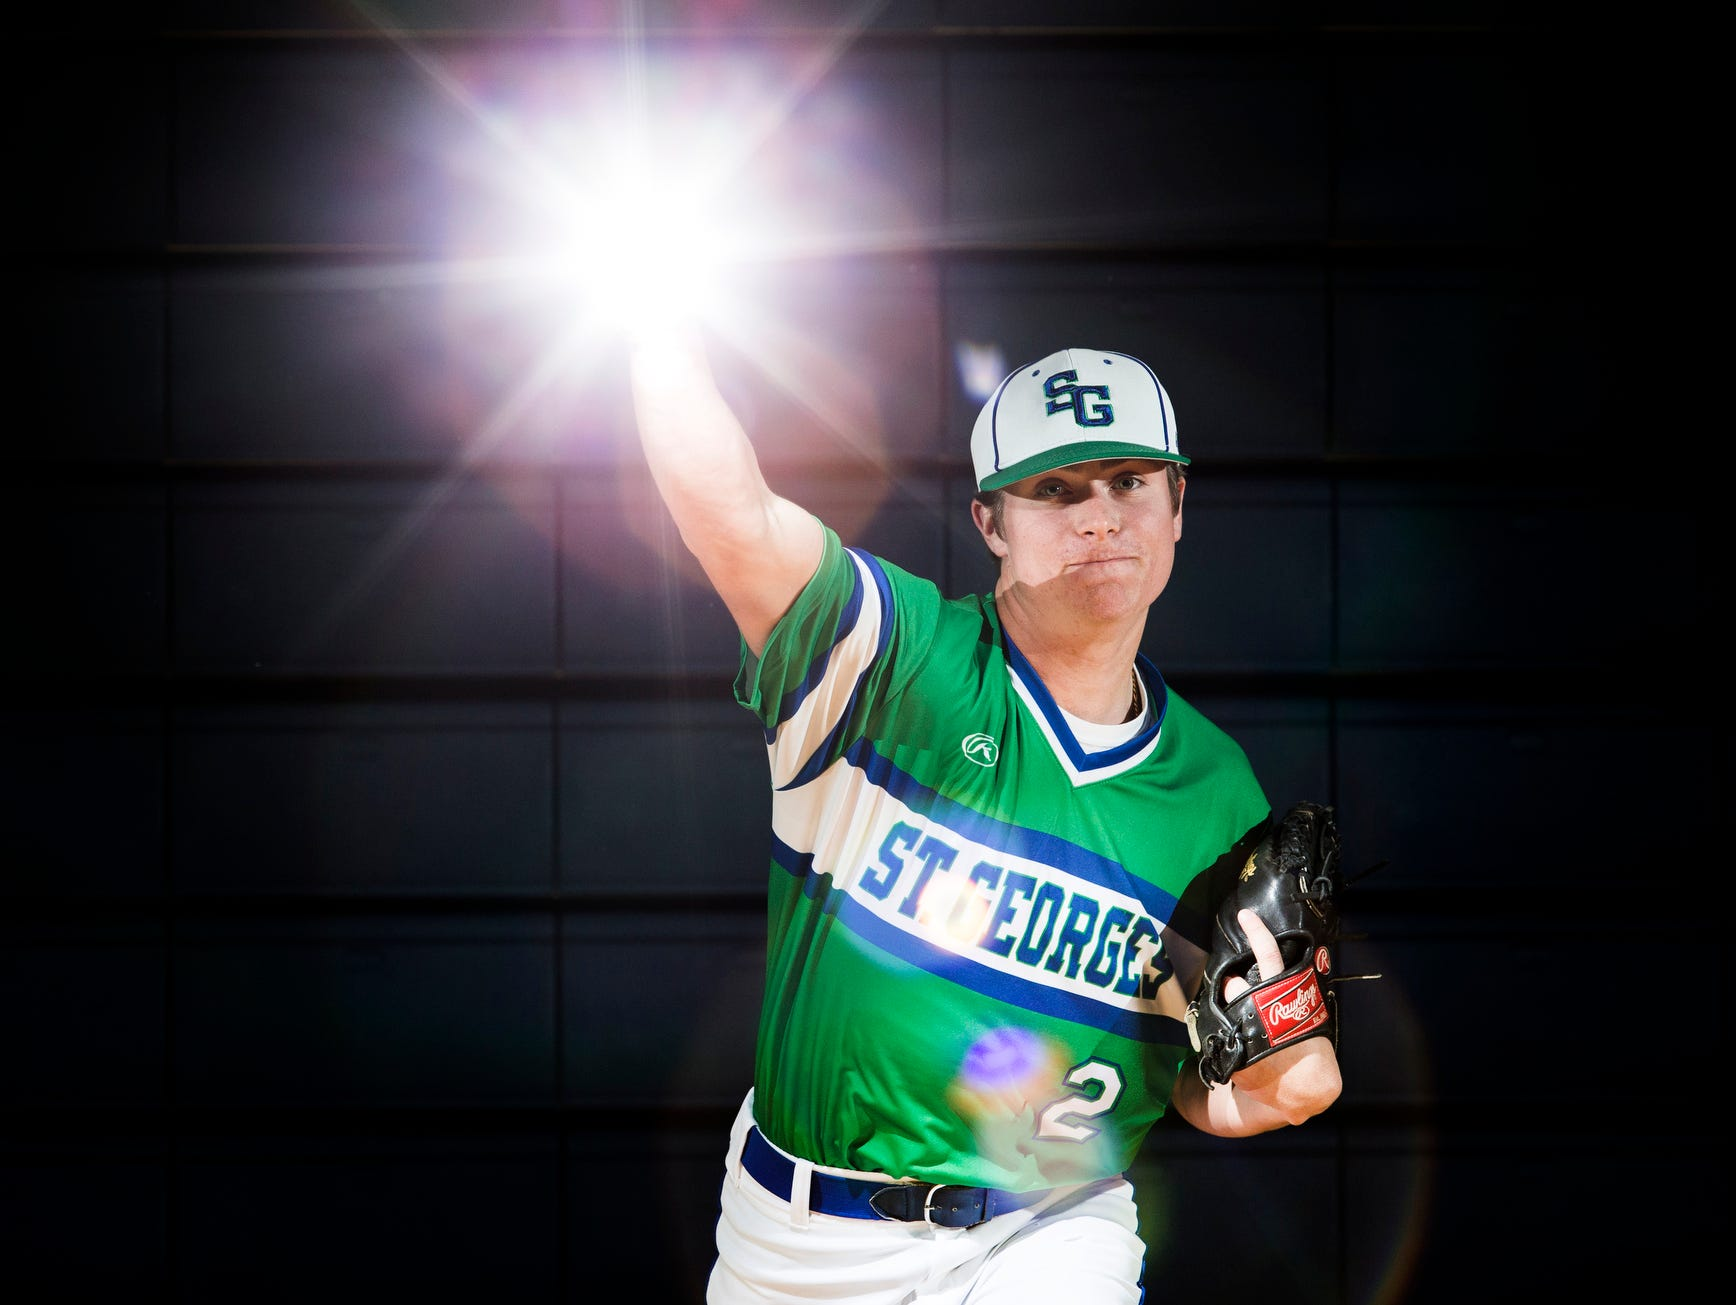 St. Georges pitcher Tyler Campbell poses for a portrait at St. Georges High School on Monday afternoon.